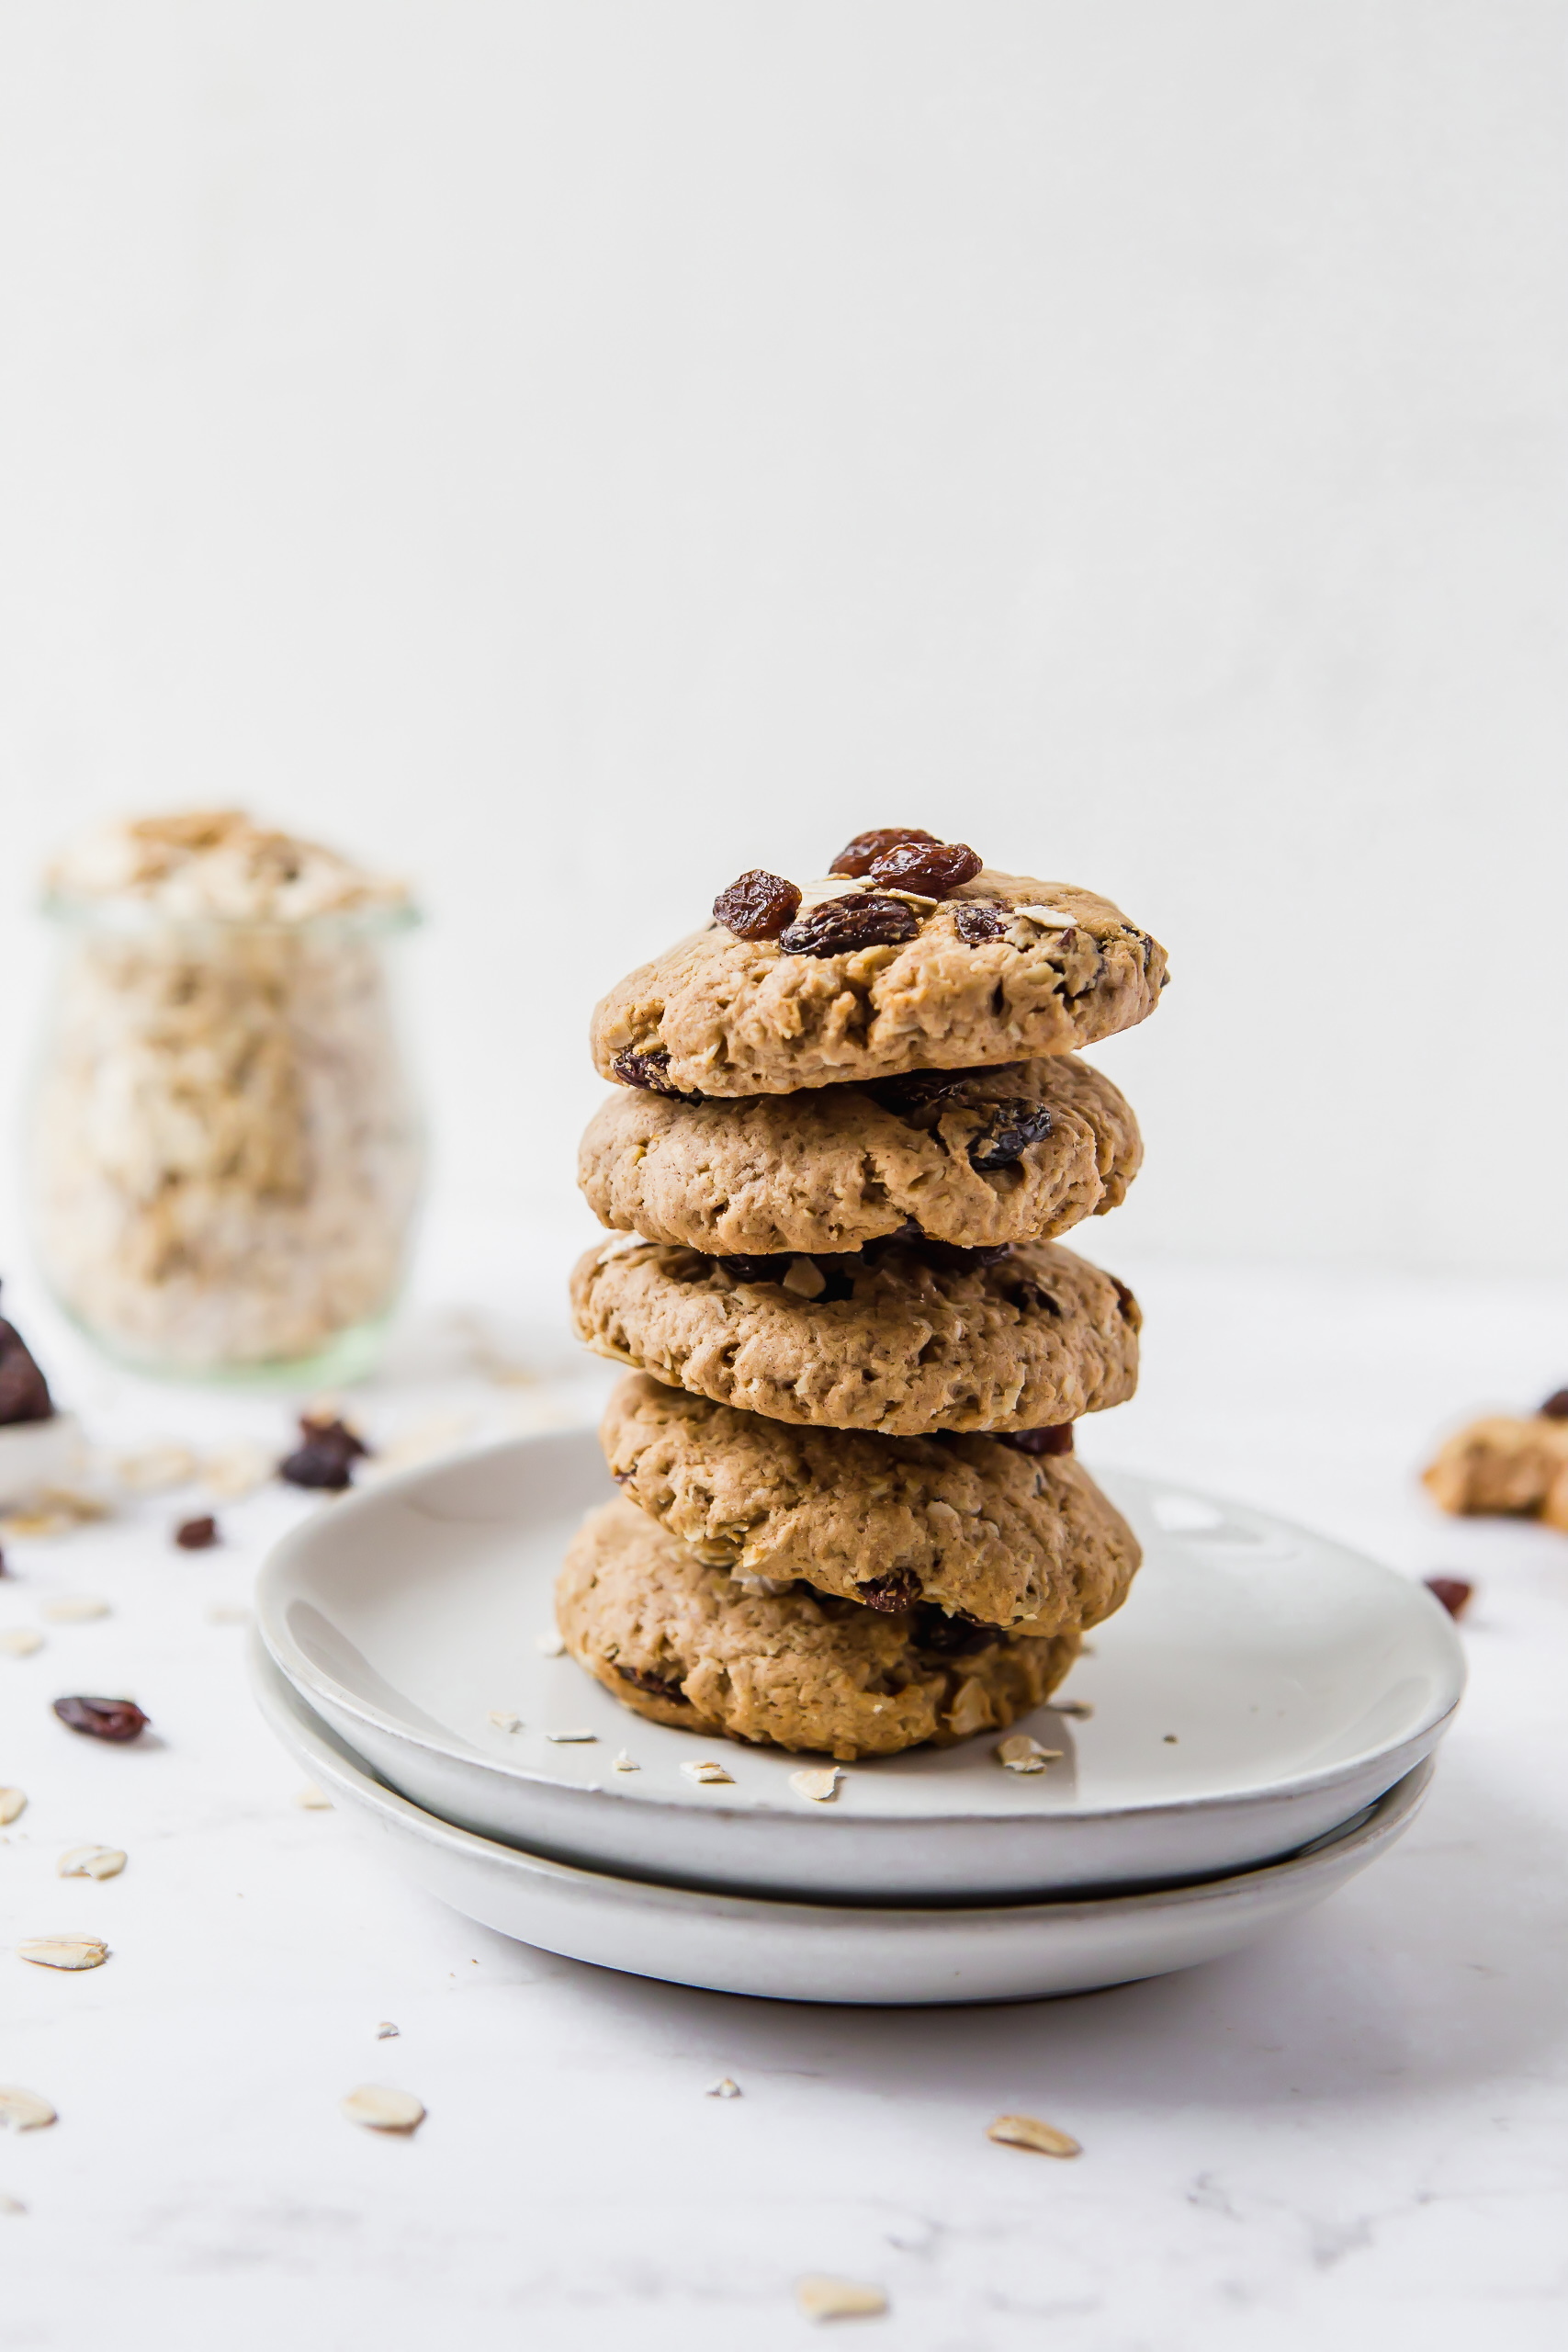 Five oatmeal raisin cookies stacked on top of each other then places on two small plates. There is a small jar of raw oats in the background on the left.